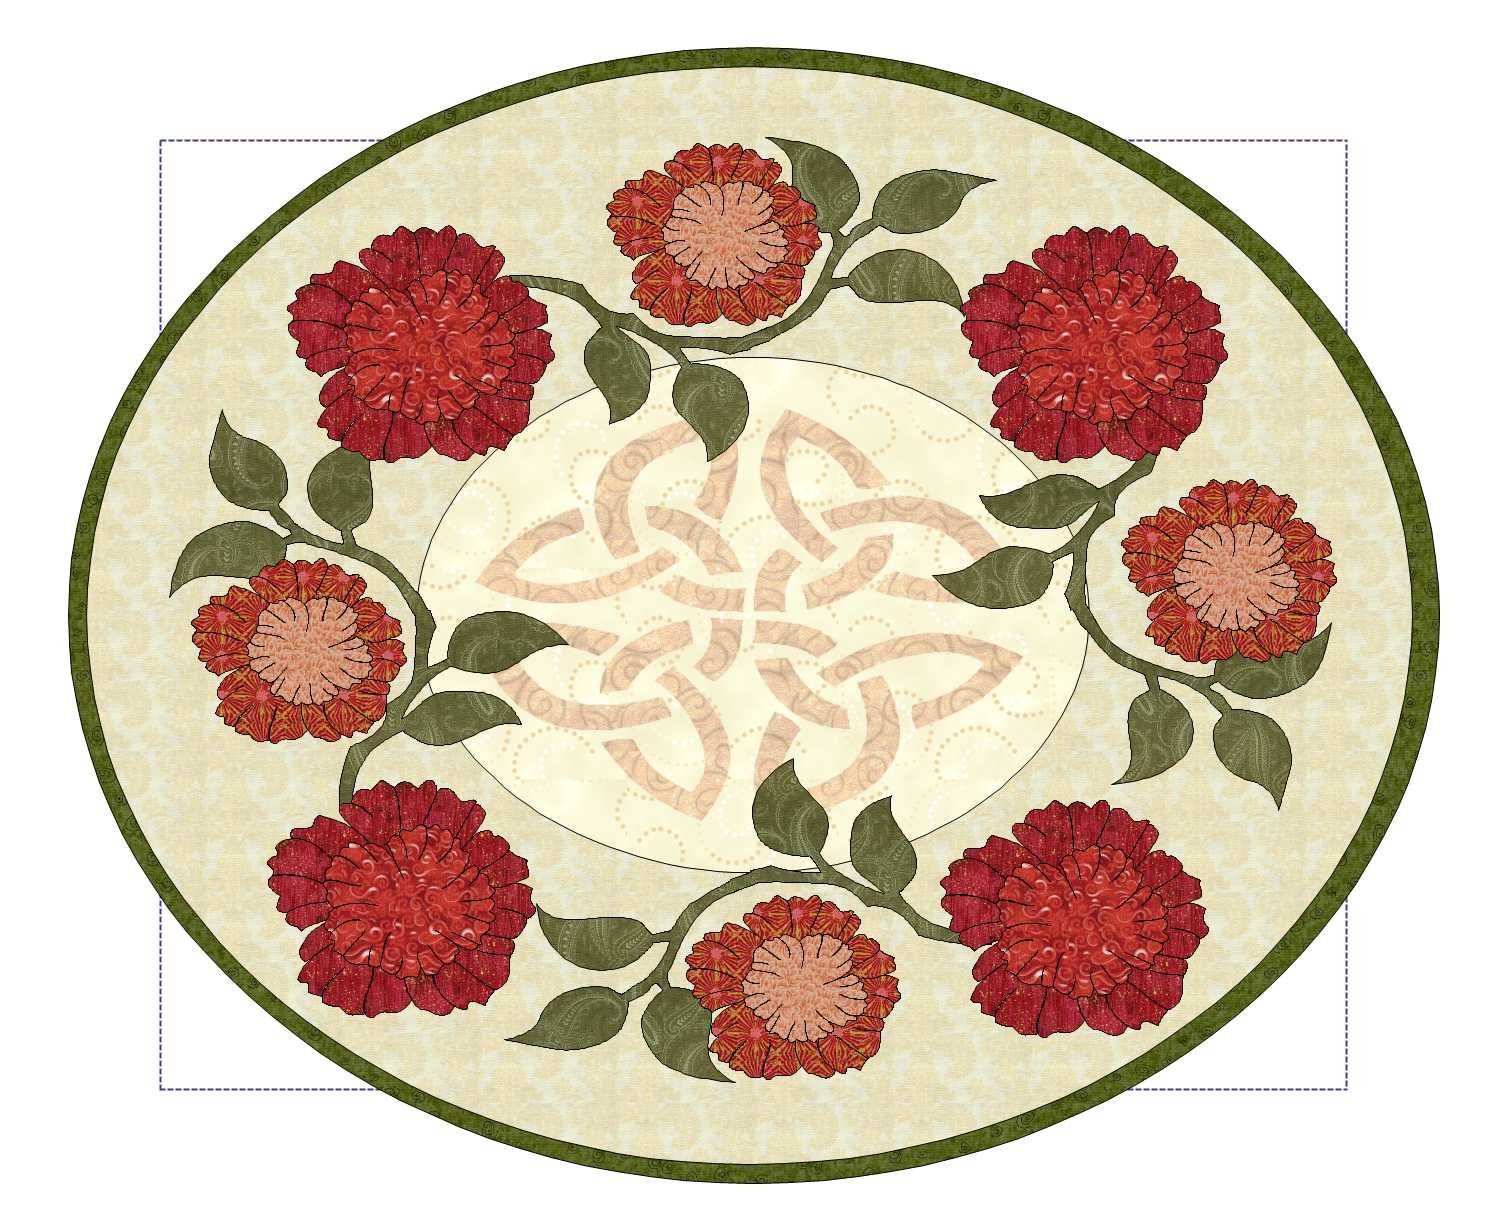 January Carnation Table Runner